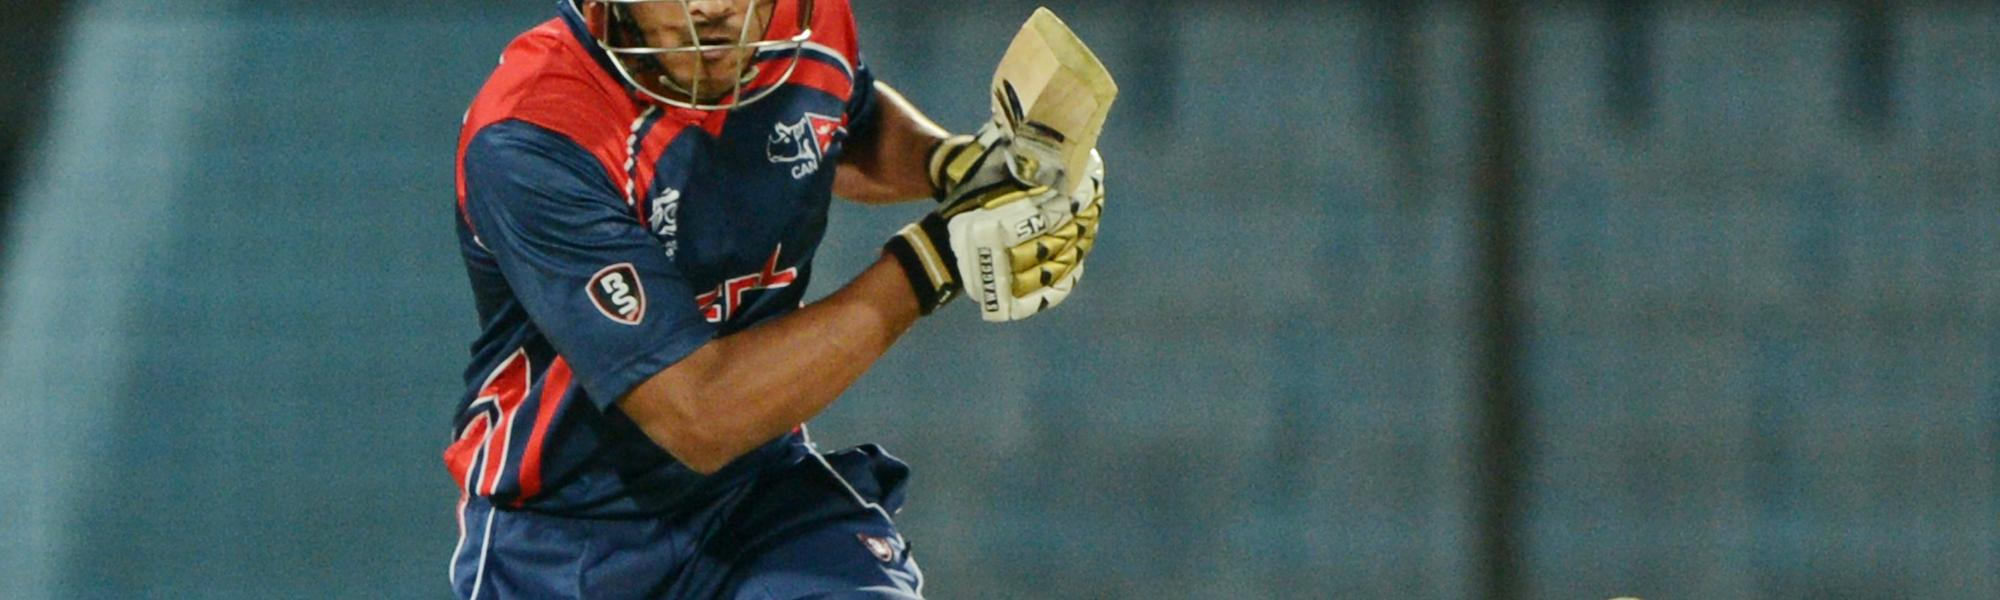 Paras Khadka, the Nepal captain, is one of the more experienced members of the young team